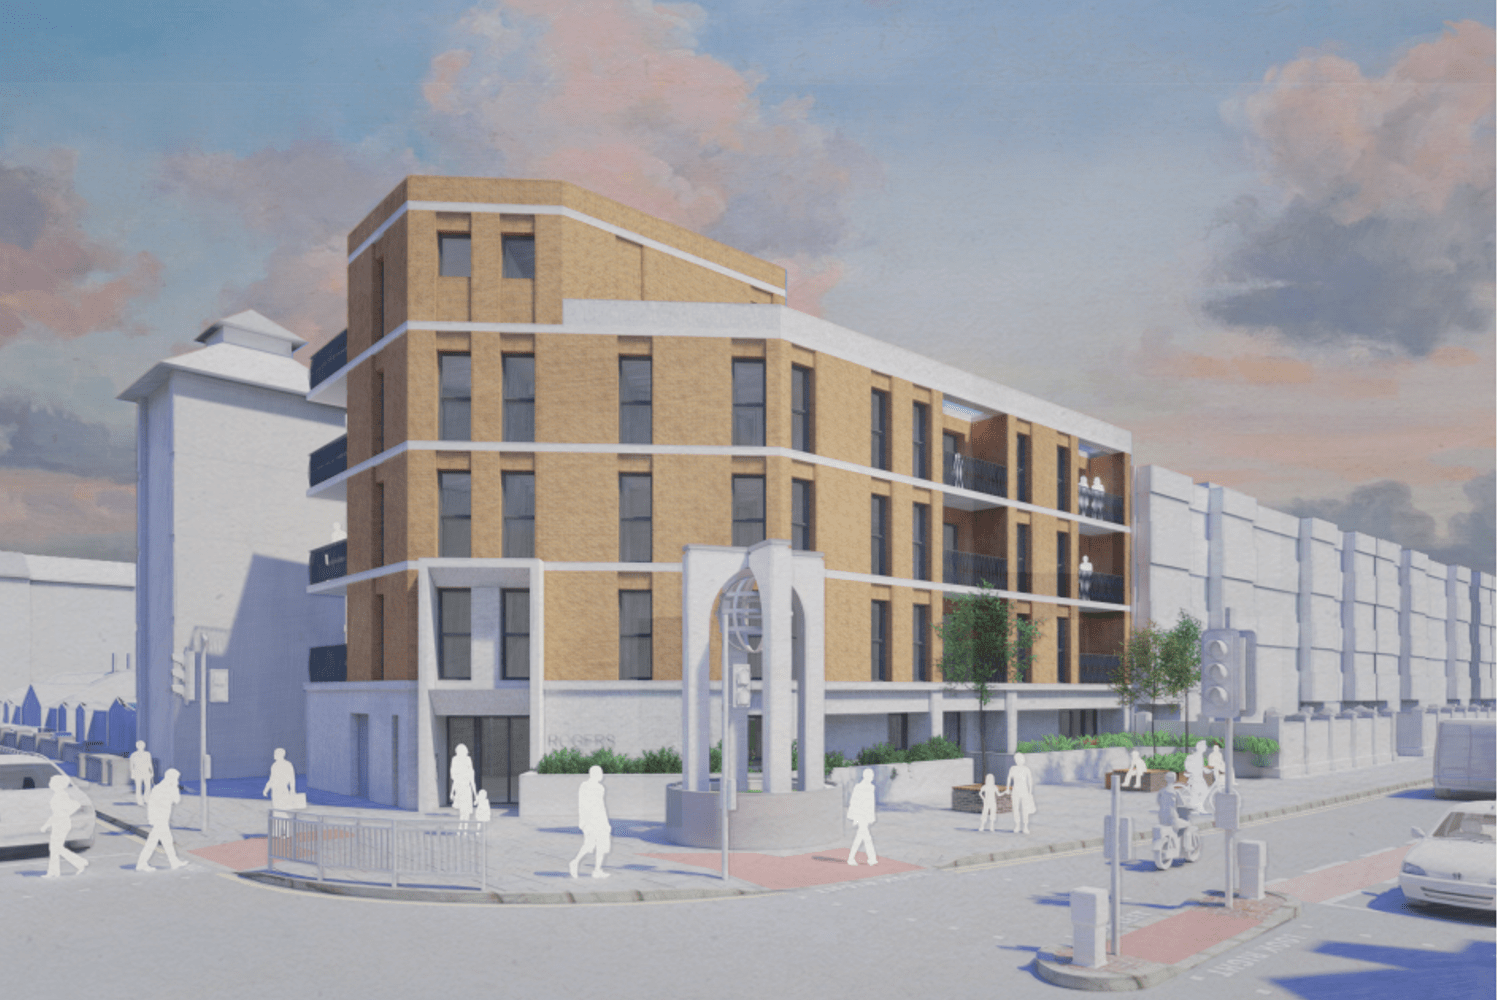 Rendering of Keats House car park development proposal